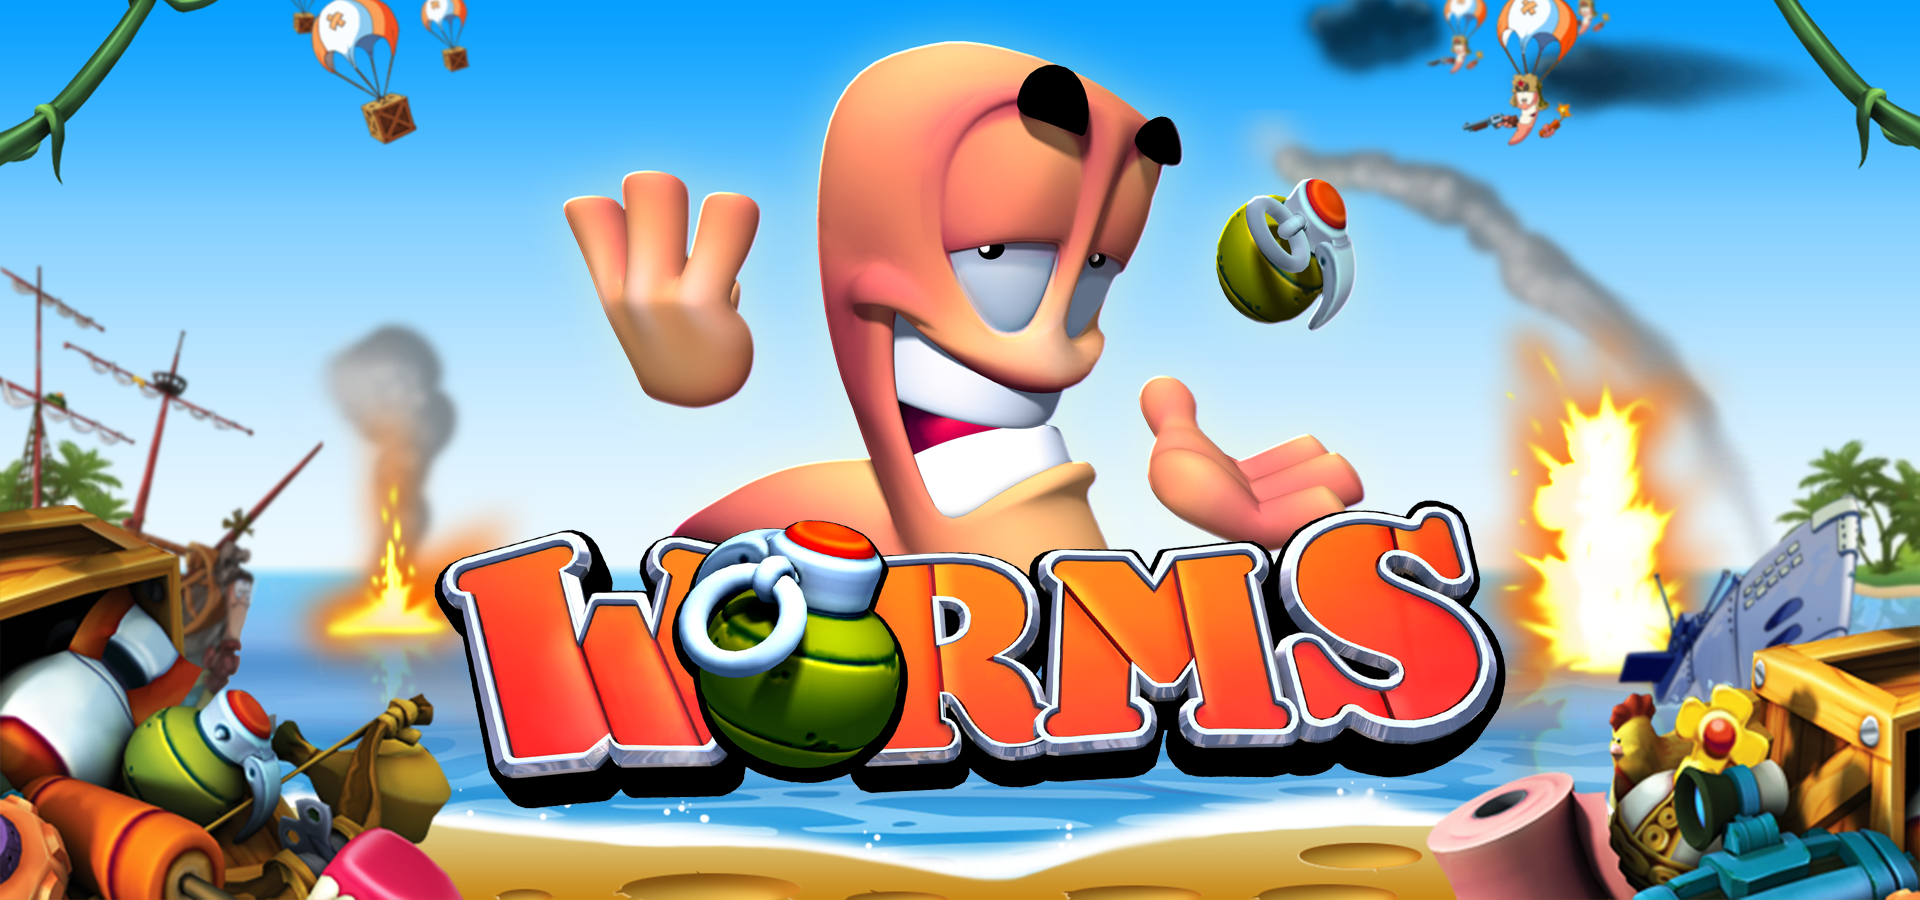 Worms Online Game